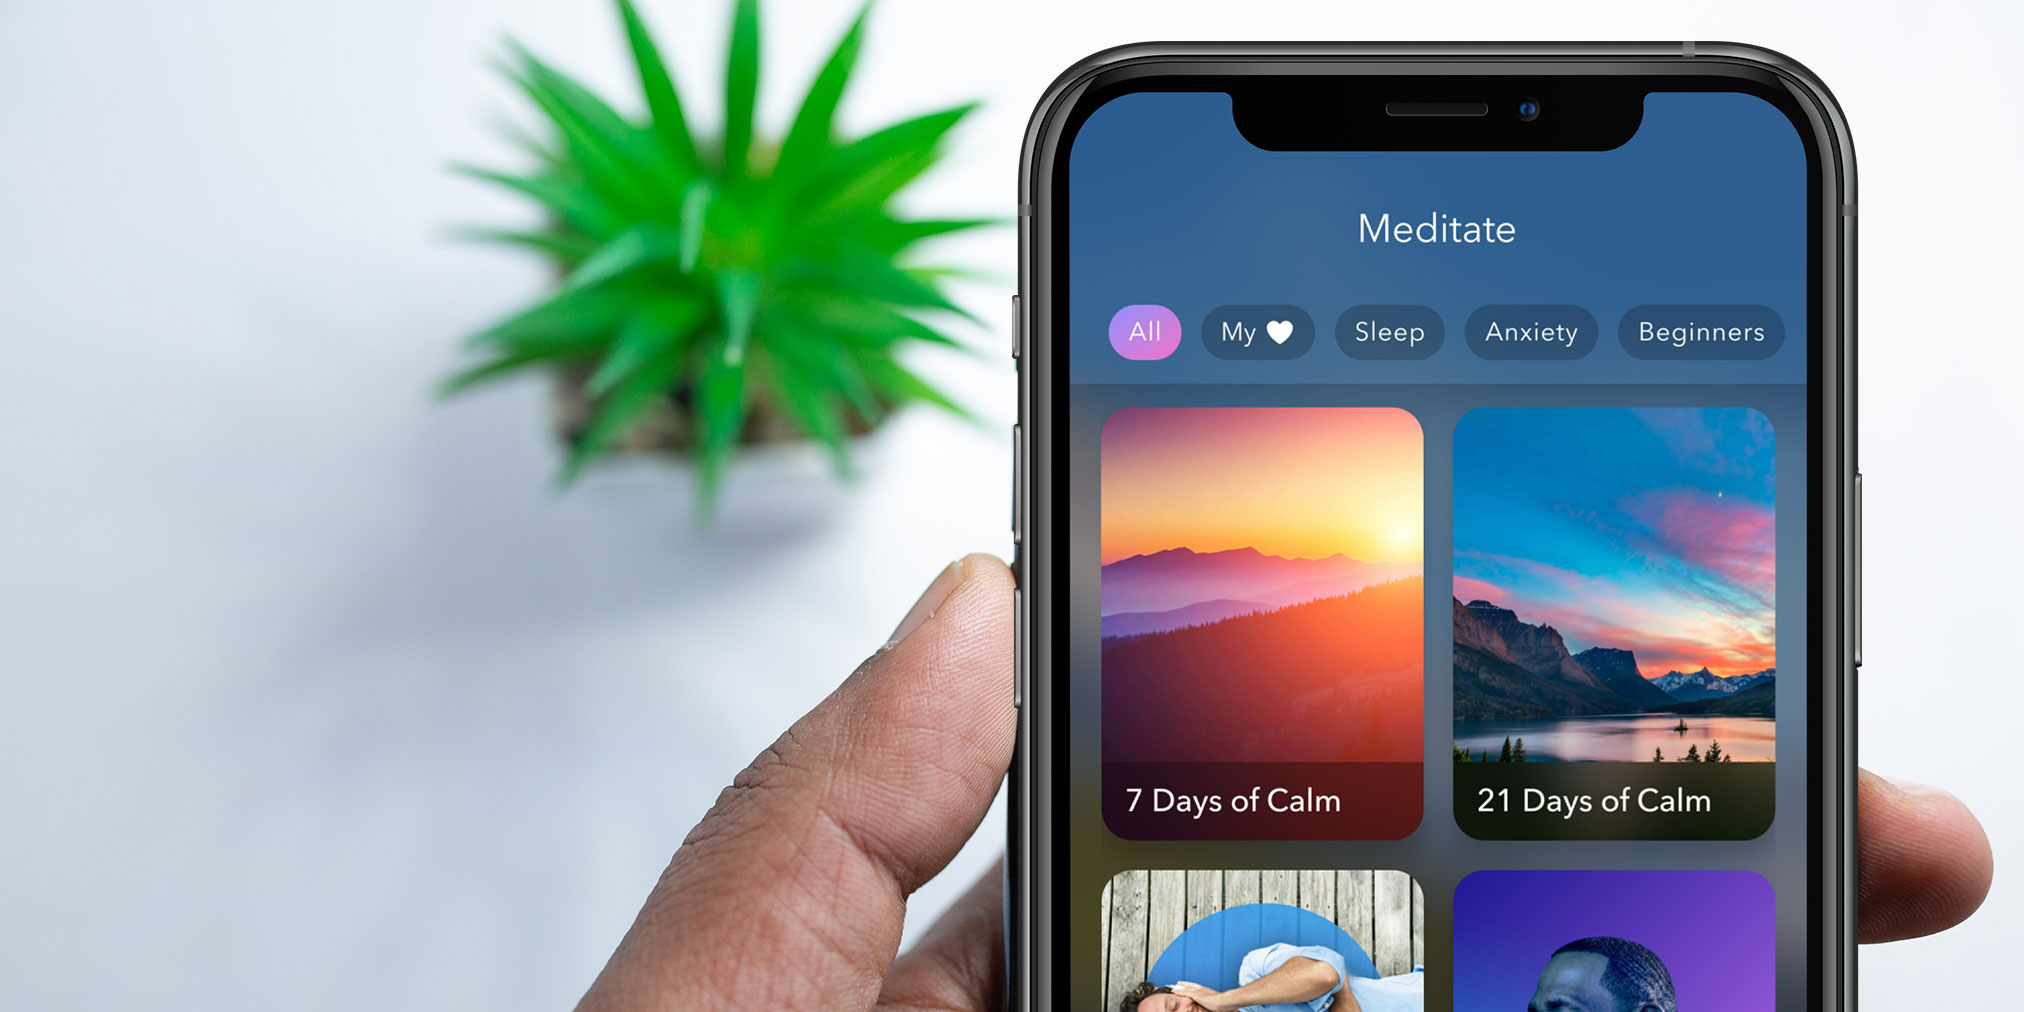 The five top-grossing mental wellness apps in the U.S. saw their installs from November 3 to November 5 grow by 30% week-over-week